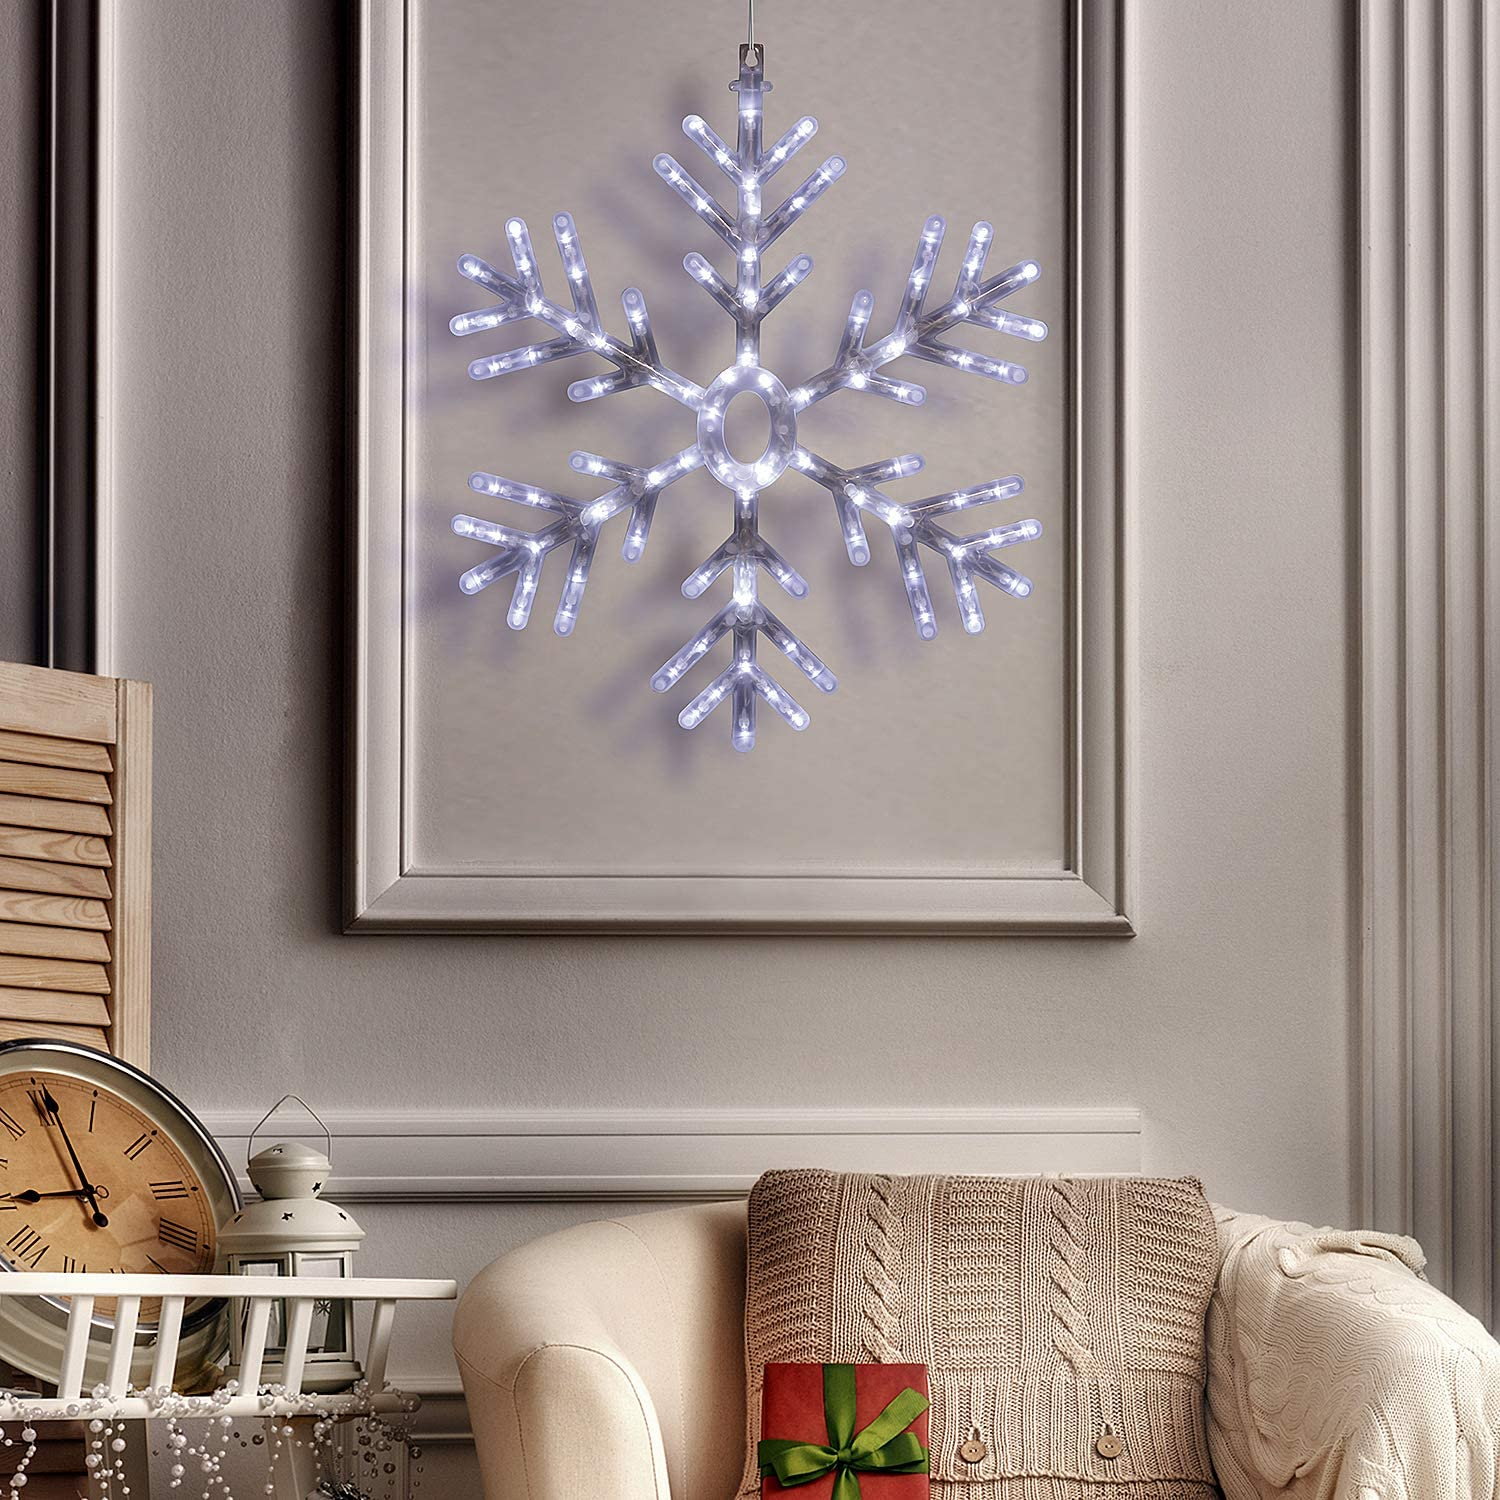 Alpine Corporation Hanging Snowflake with LED Lights and Remote Control, Festive Holiday Decor for Home and Garden - 25-Inch Tall - White